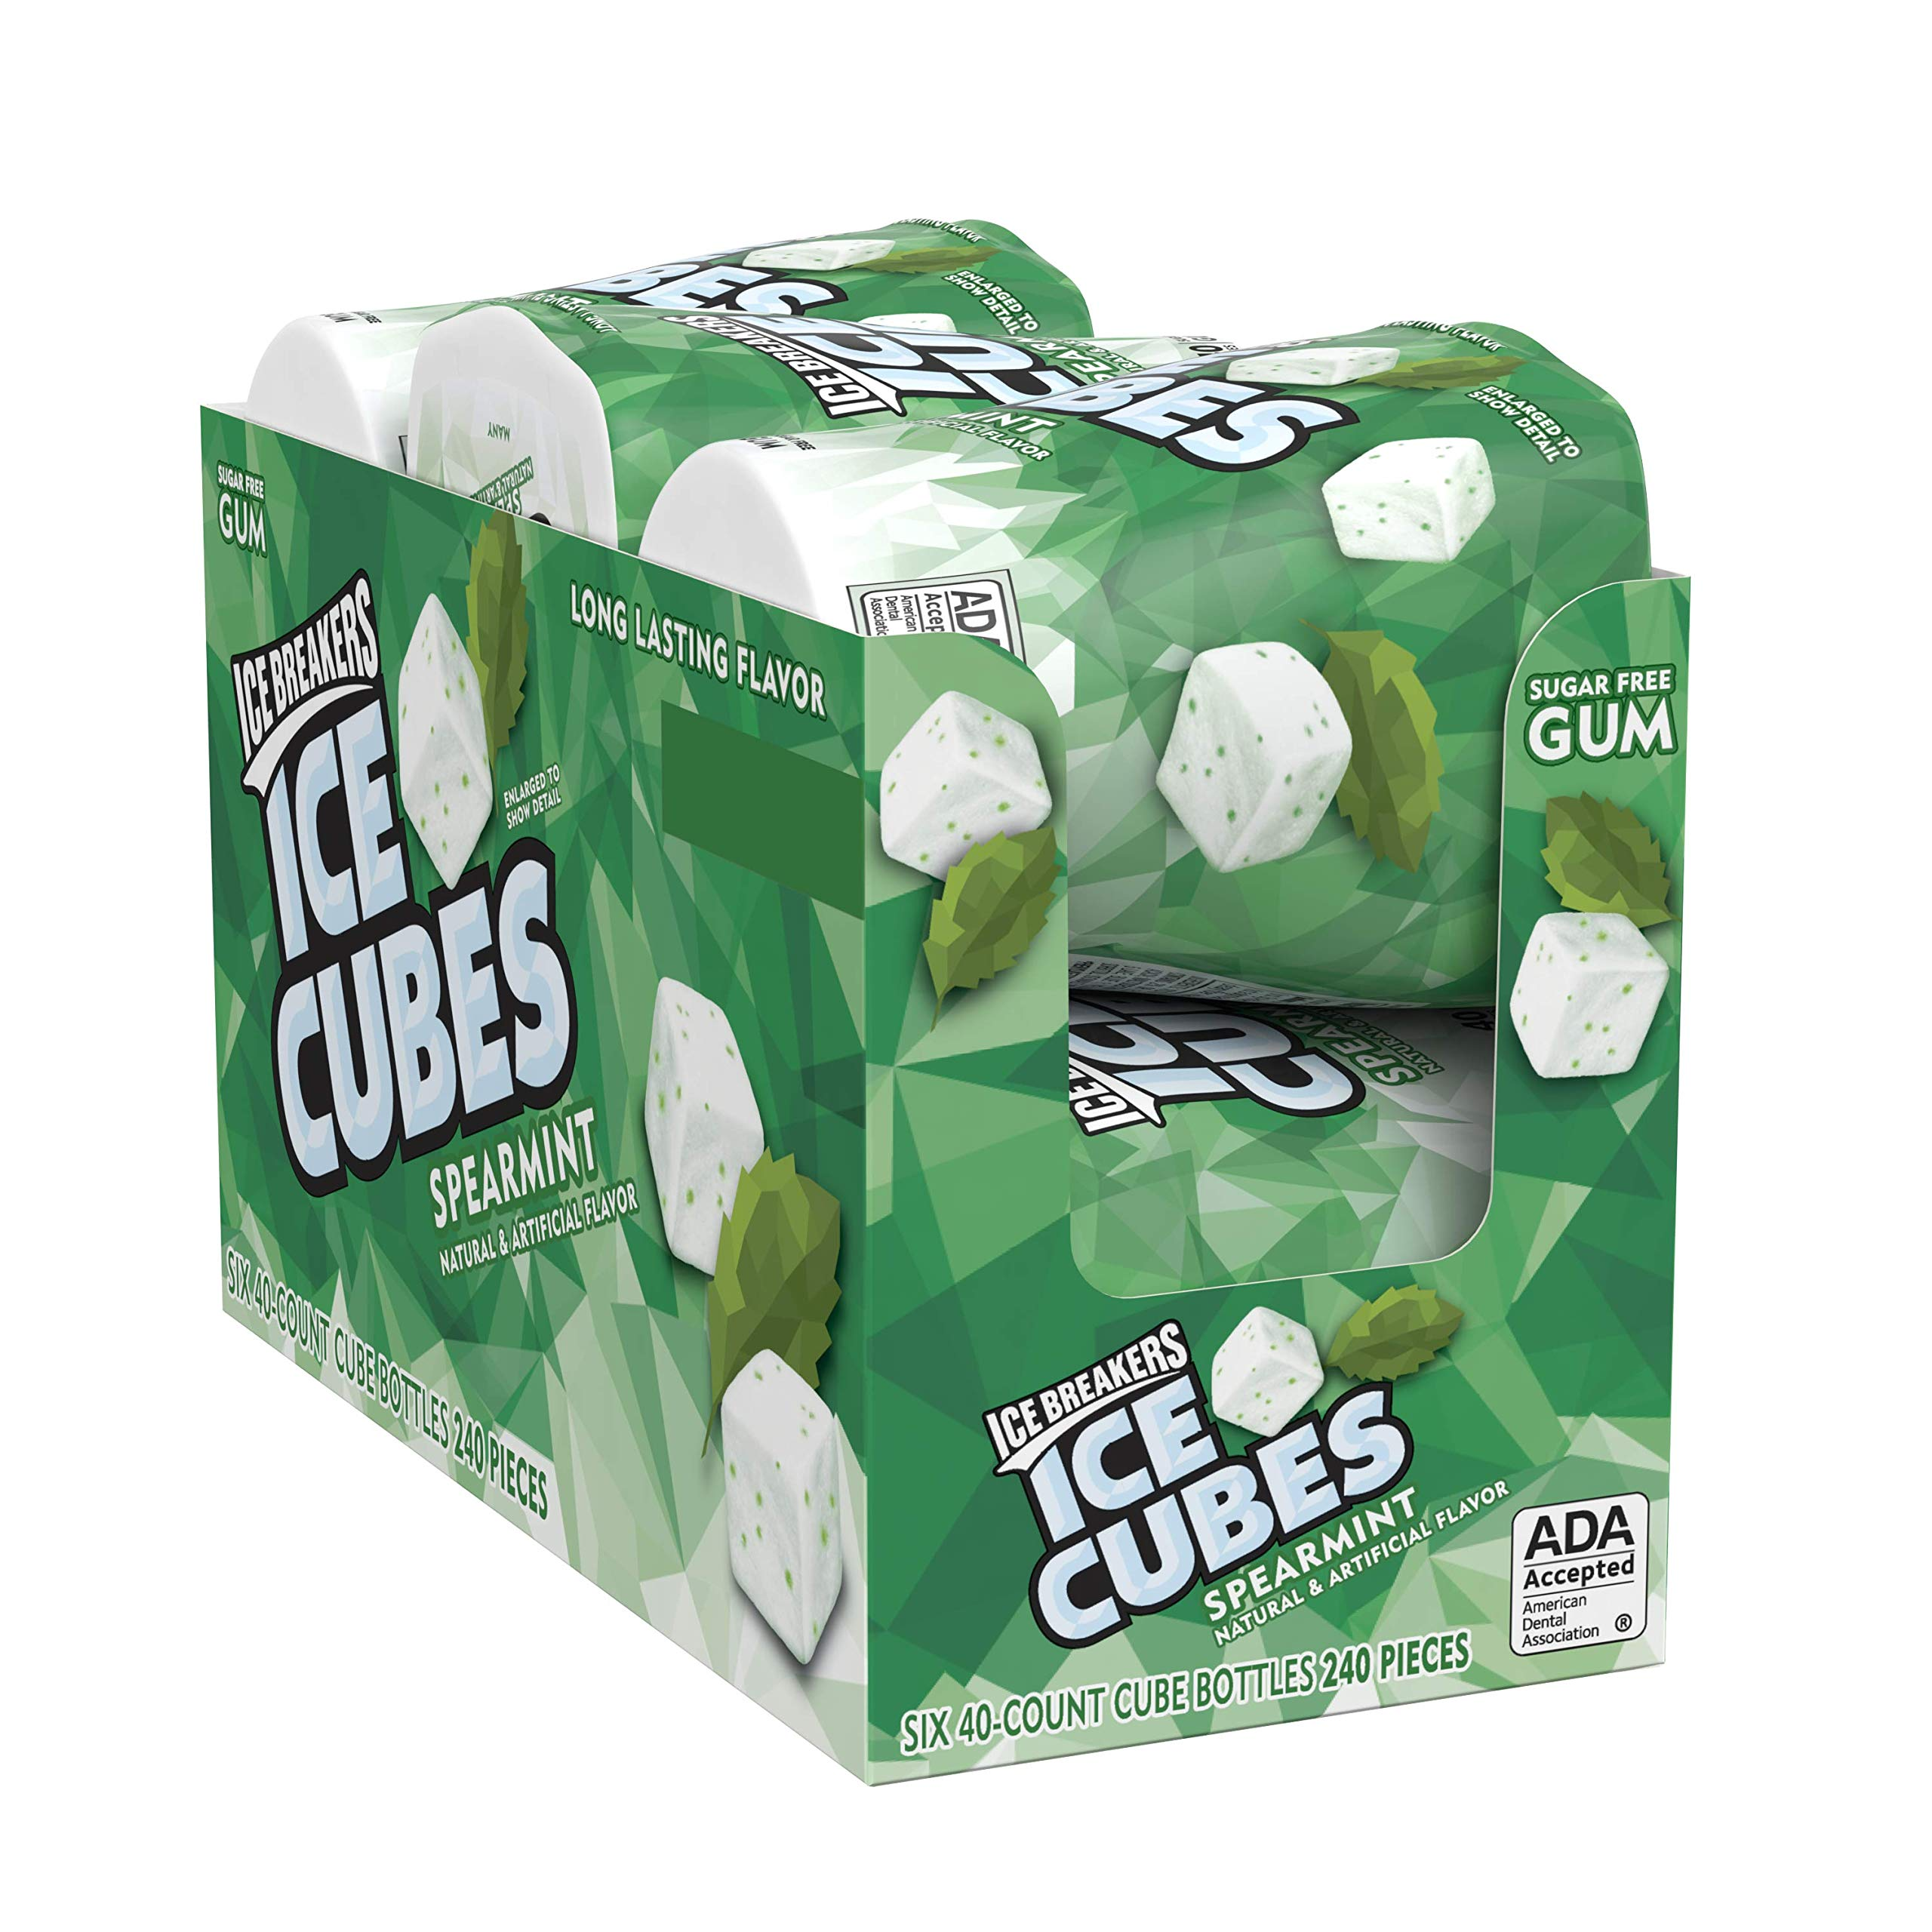 Ice Breakers Ice Cubes Sugar Free Gum with Xylitol, Spearmint, 40 Count, Pack of 6 by Ice Breakers